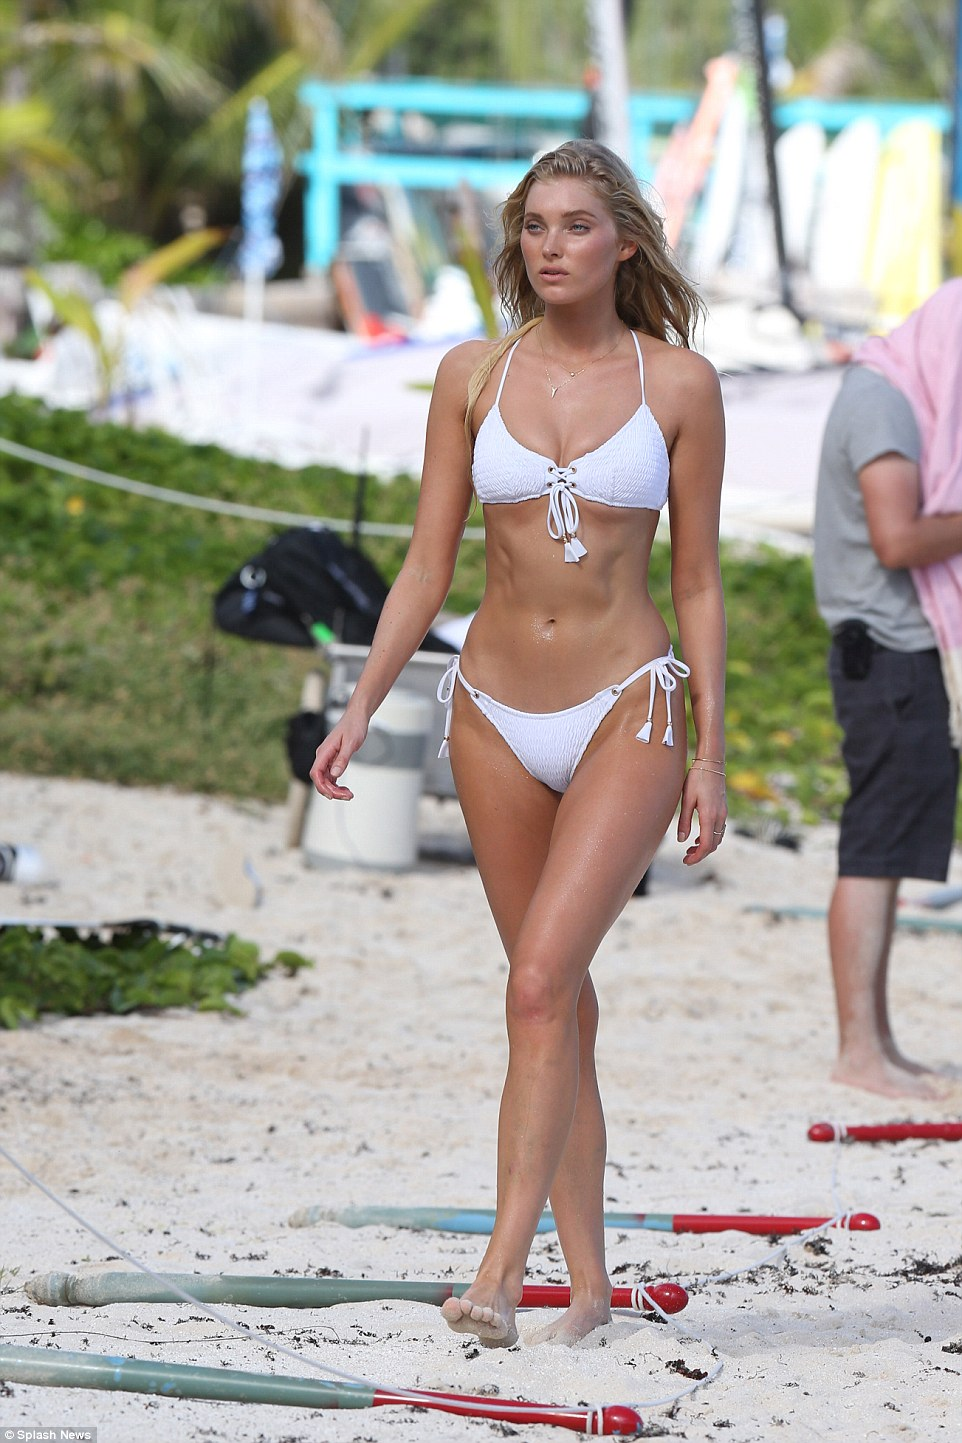 Beach babe: Elsa Hosk flaunted her incredible figure in a skimpy white bikini as she turned up the heat during a shoot for Victoria's Secret in St Barths